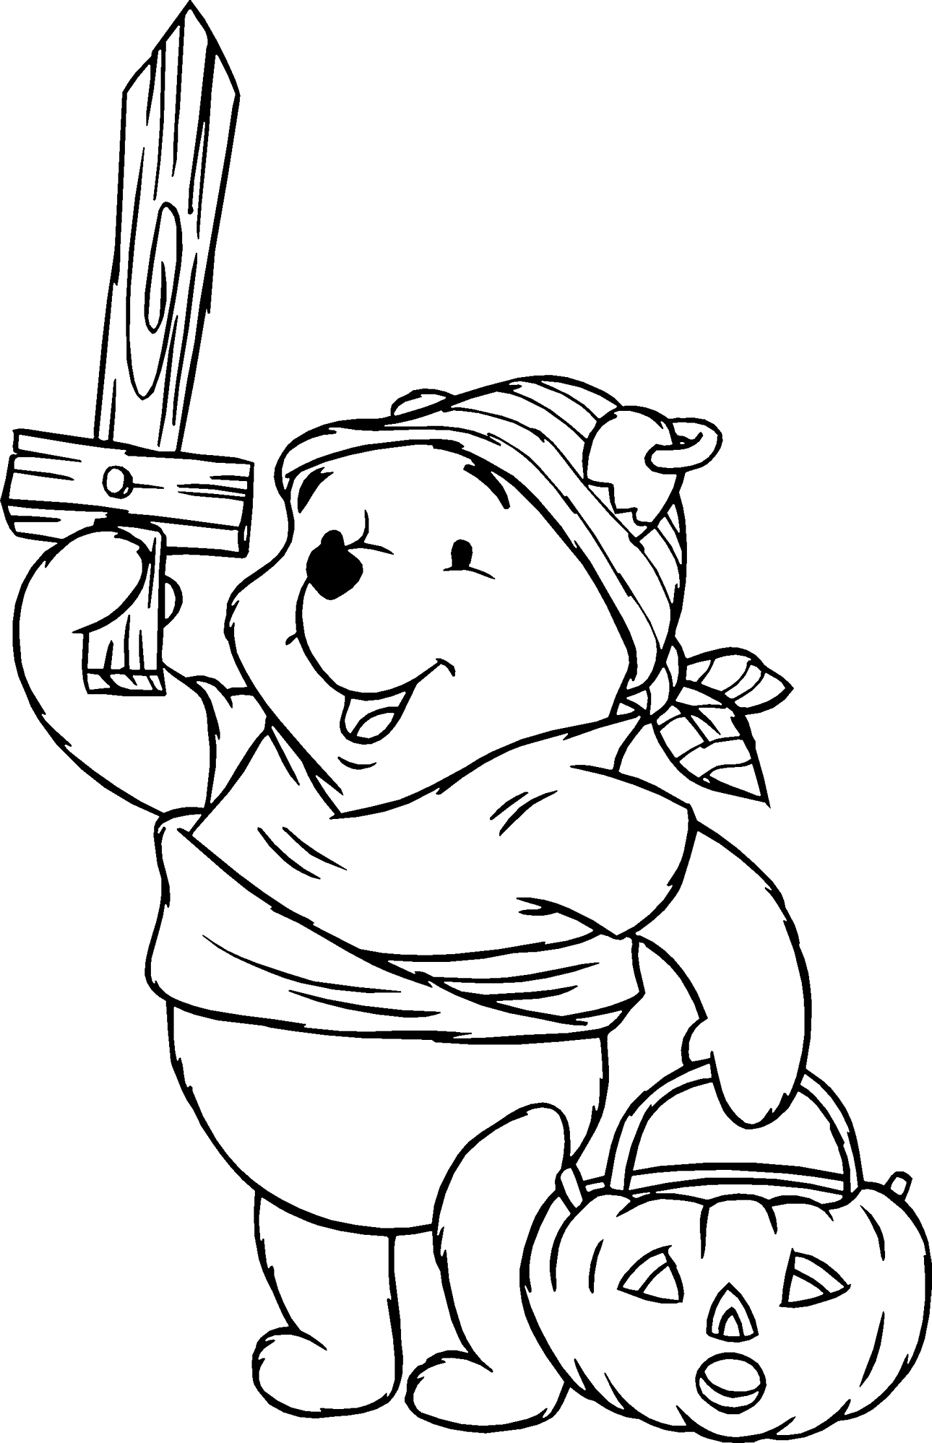 halloween letters coloring pages - photo#33